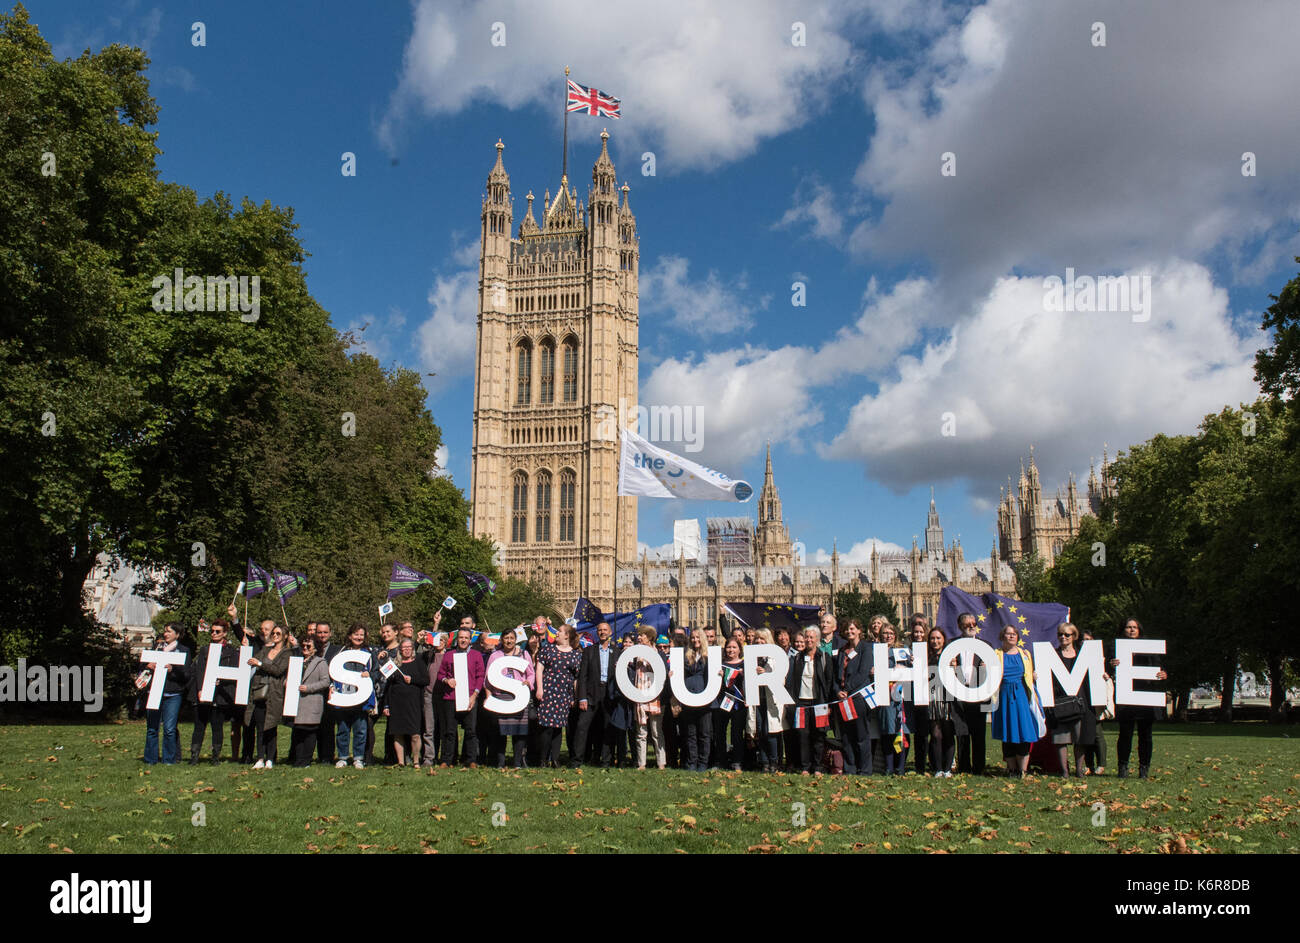 London, United Kingdom. 13th Sep, 2017. Pro EU group 'The 3 Million' hold photocall in Victoria Tower Gardens - Stock Image